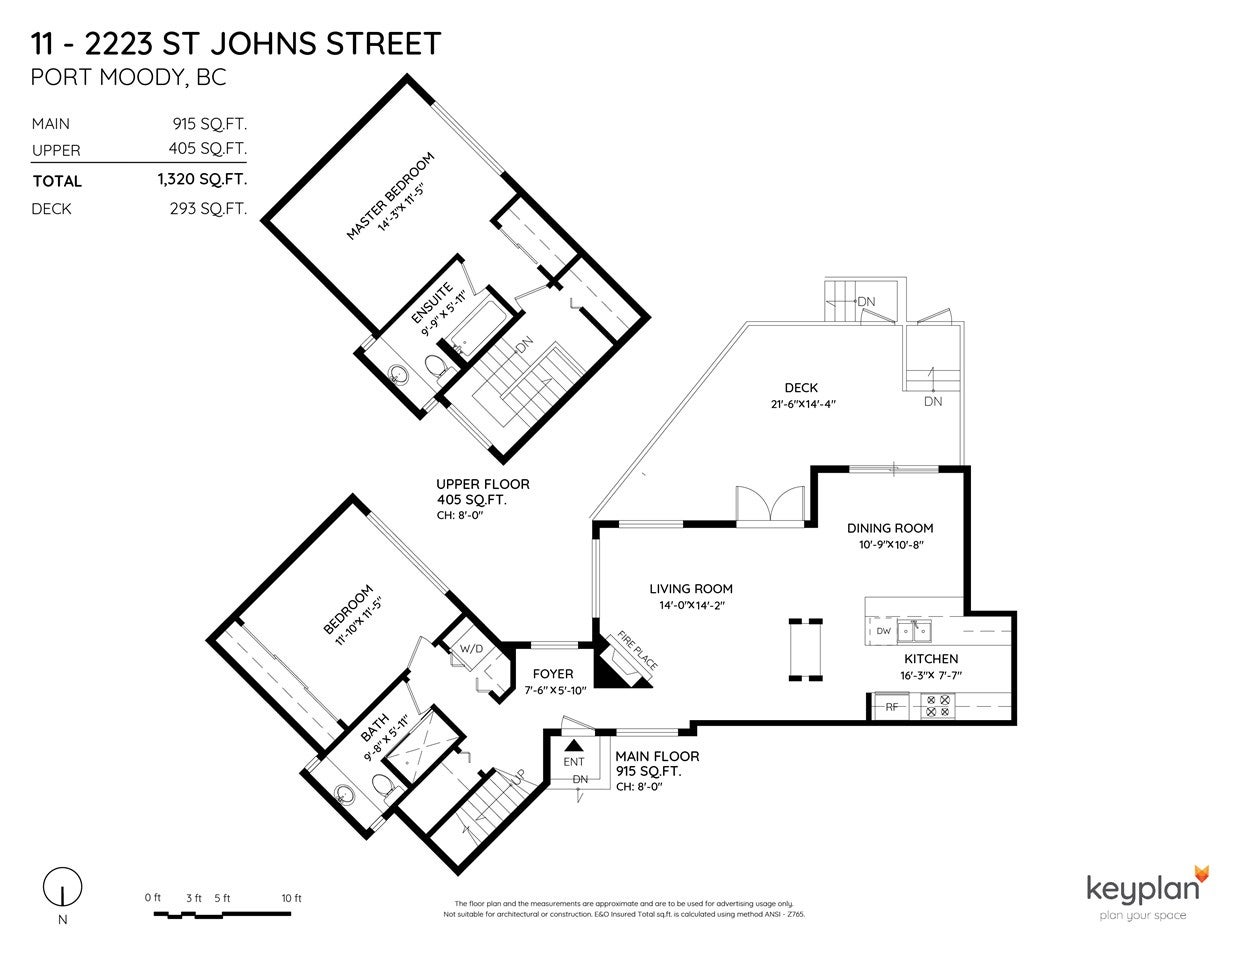 11 2223 ST JOHNS STREET - Port Moody Centre Townhouse for sale, 2 Bedrooms (R2479968) - #22